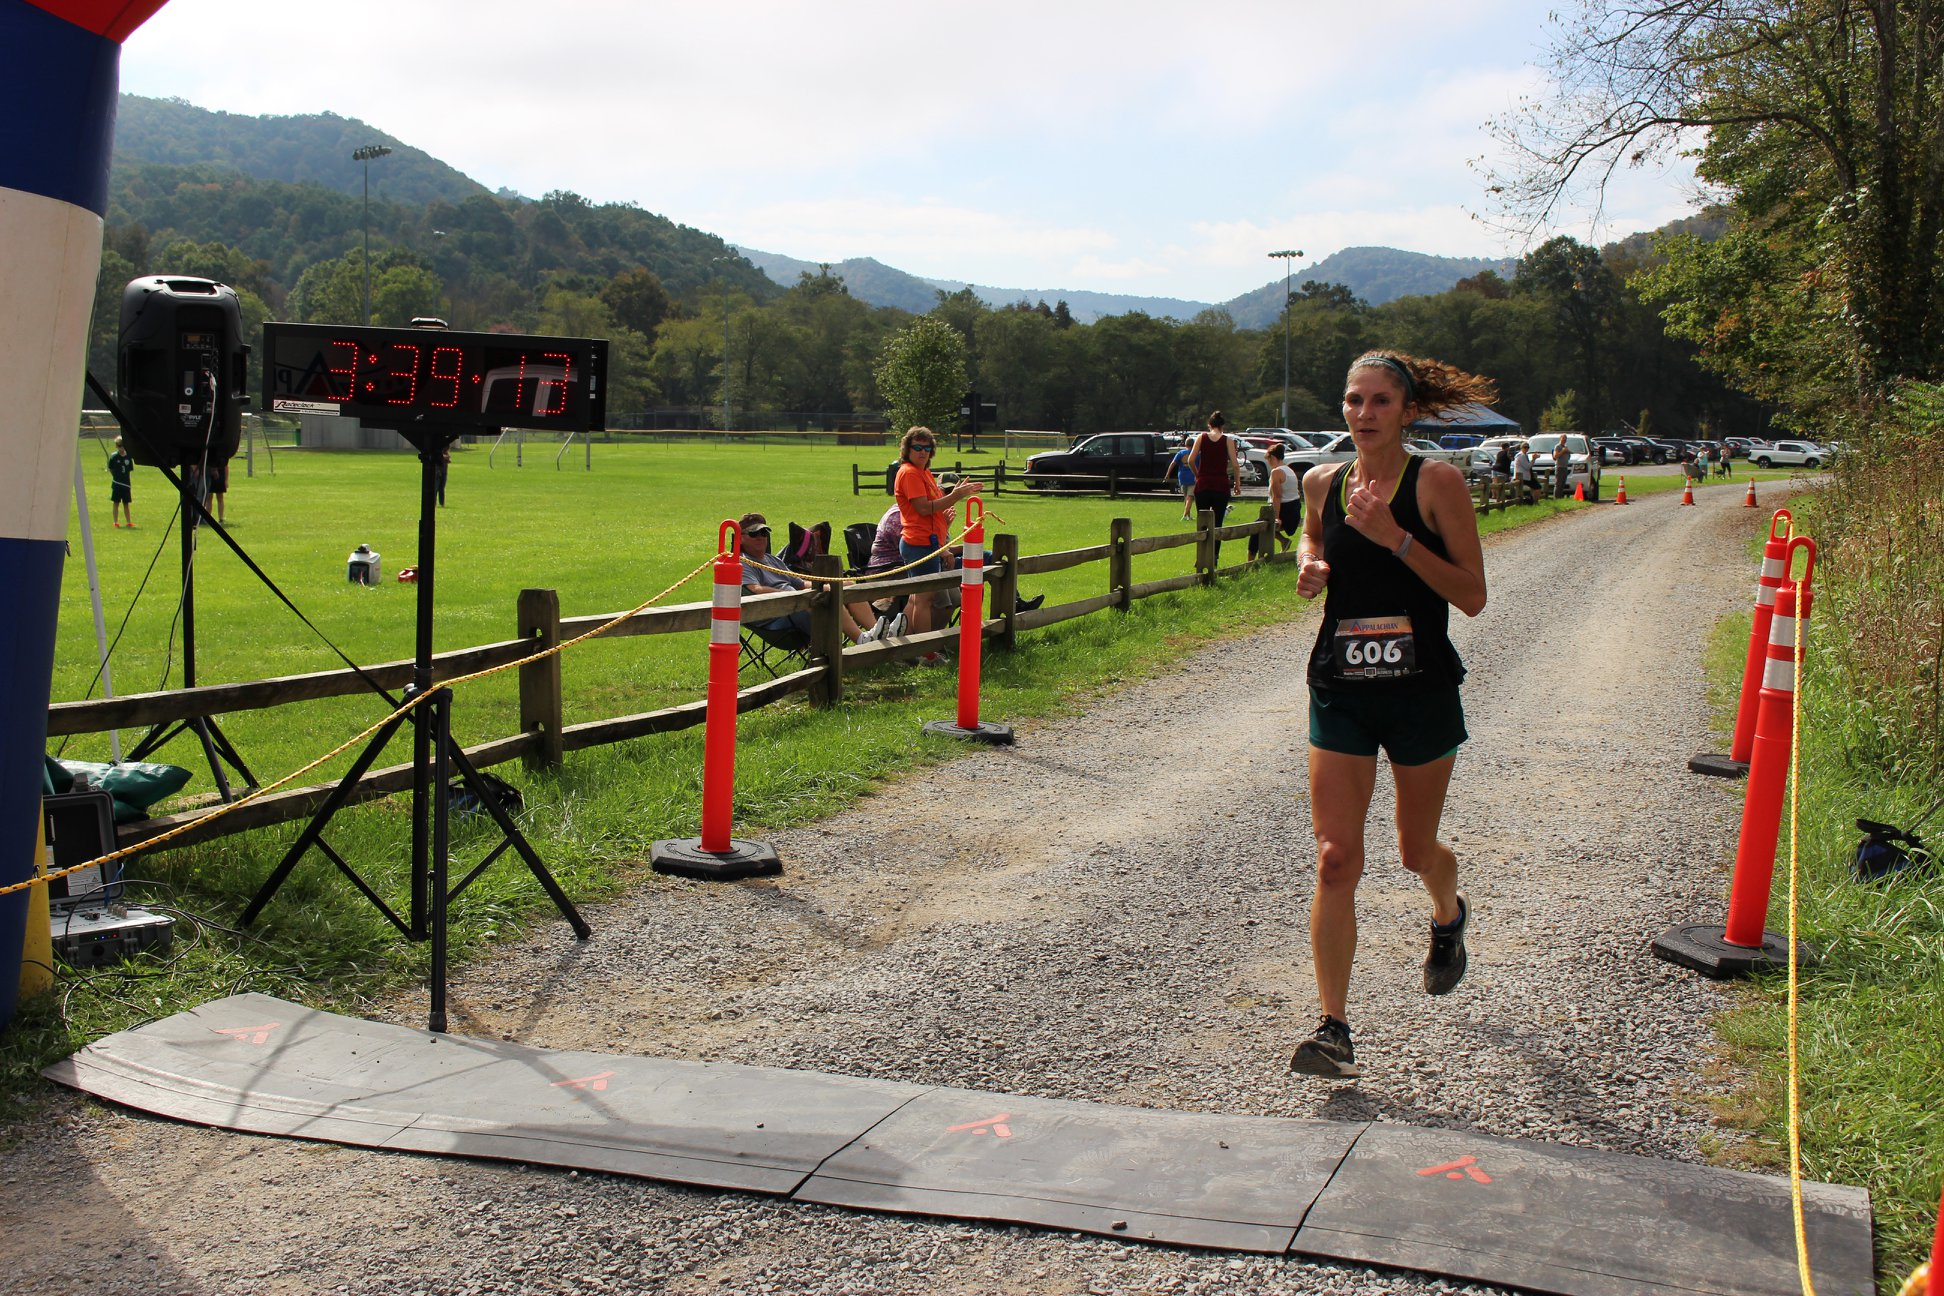 First Place Overall Female - Shannon Shrewsberry - Women's Course Record Holder: 3:39